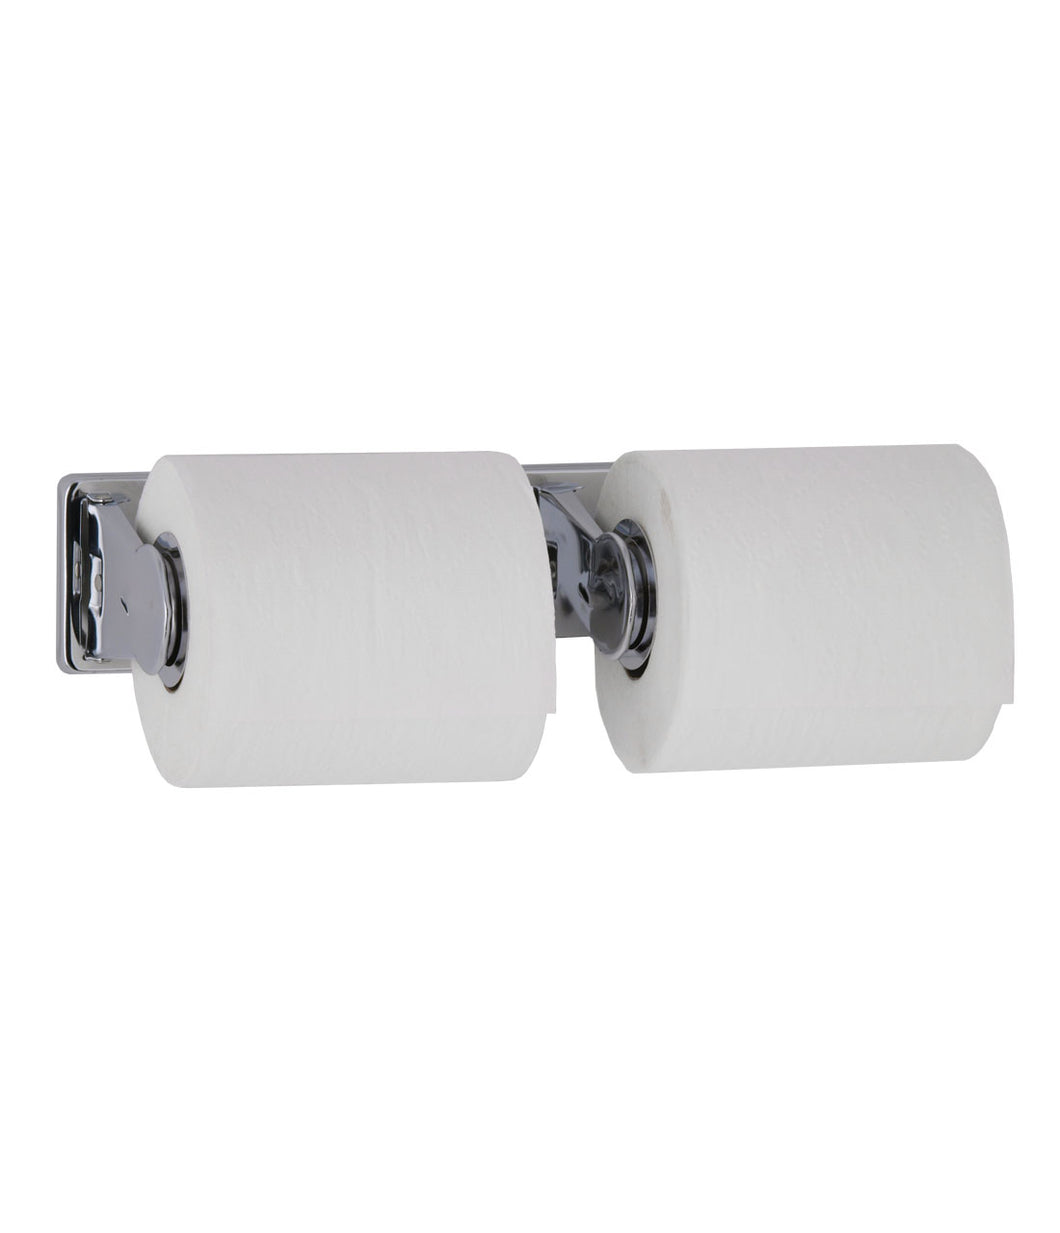 Surface-Mounted Vandal-Resistant Toilet Tissue Dispenser for Two Rolls